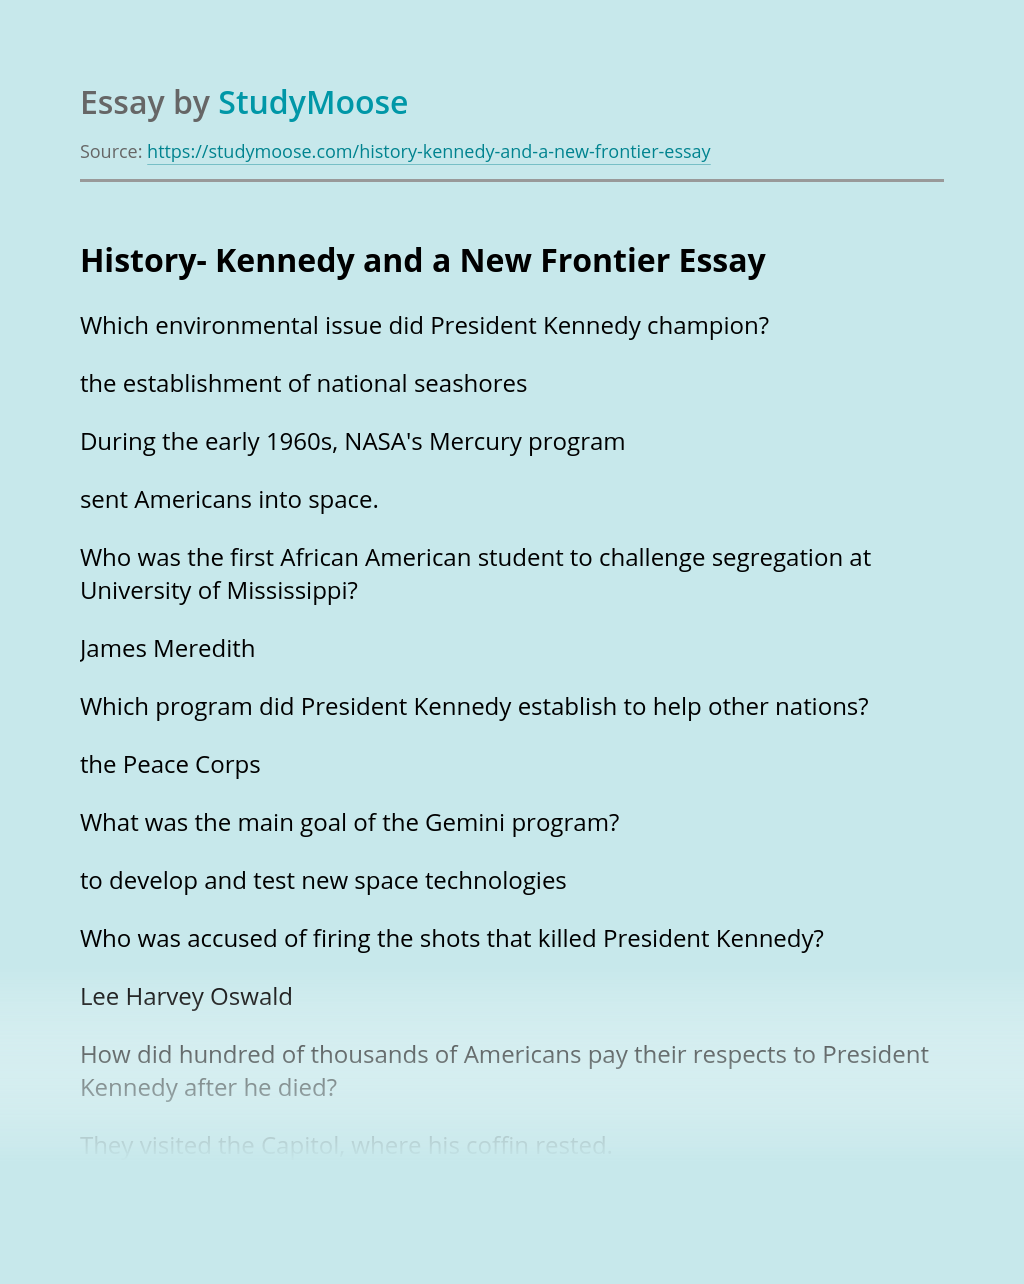 History- Kennedy and a New Frontier